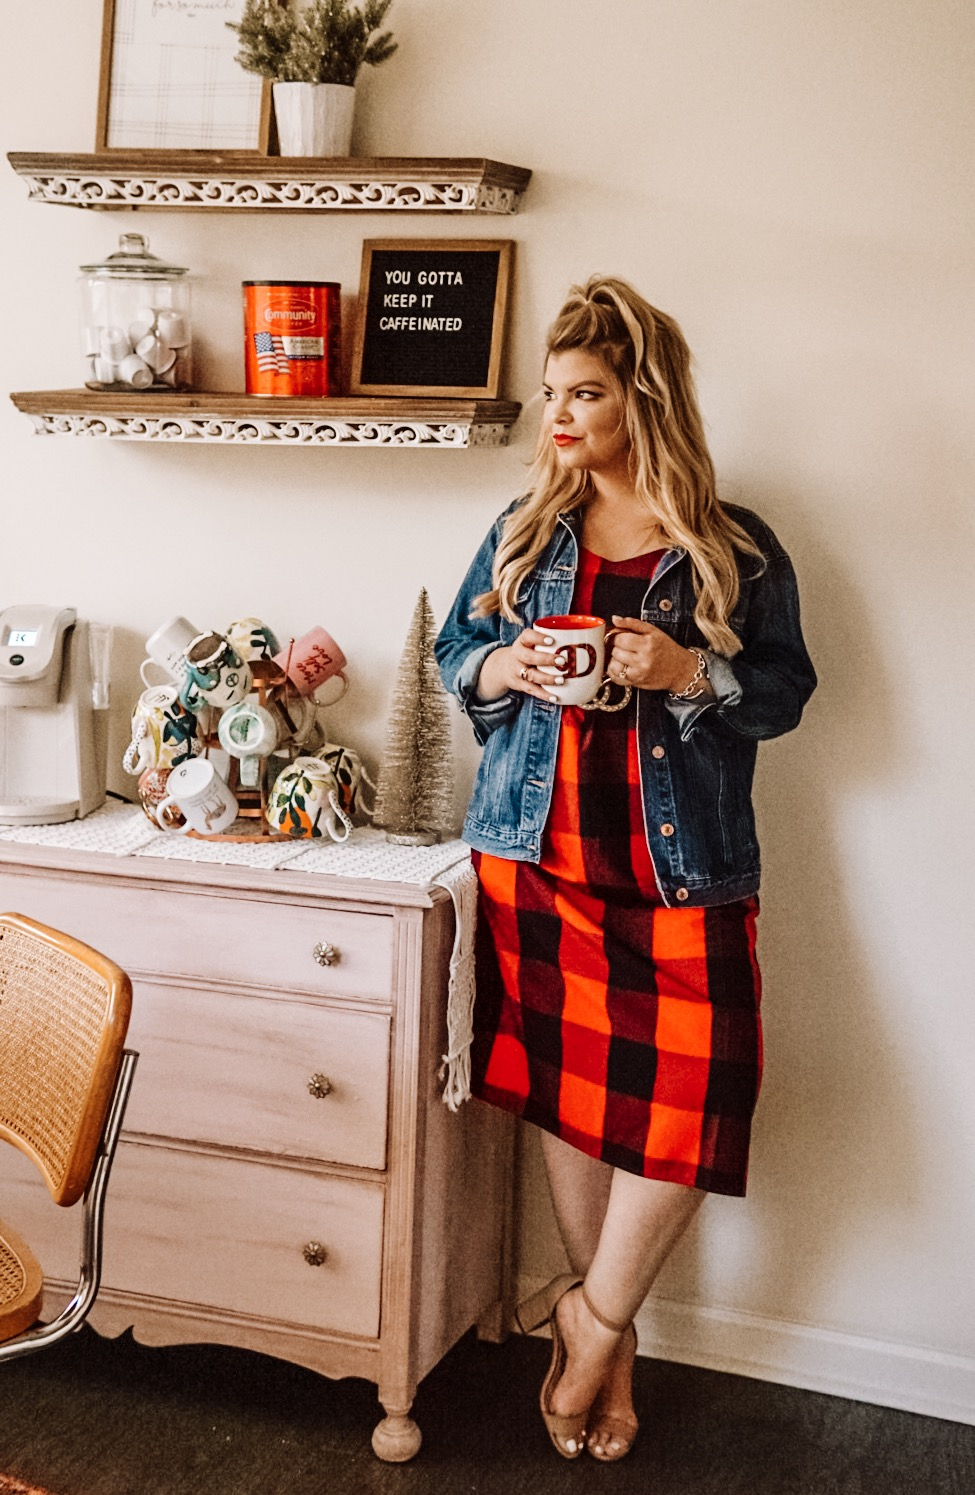 Lacey Anne Douthat of the Glitter Gospel Blog shares 5 Ways to Perk Up Your Day with Community Coffee. Coffee, Coffee Bar, Boho Coffee Bar, Buffalo Plaid Dress, Holiday Outfit, Morning Routine, Mug Tree, Letterboard, WalMart, Breakfast Nook, Beigh Blonde Hair, Half up Hairstyle, White Keurig, Cute Coffee Mugs